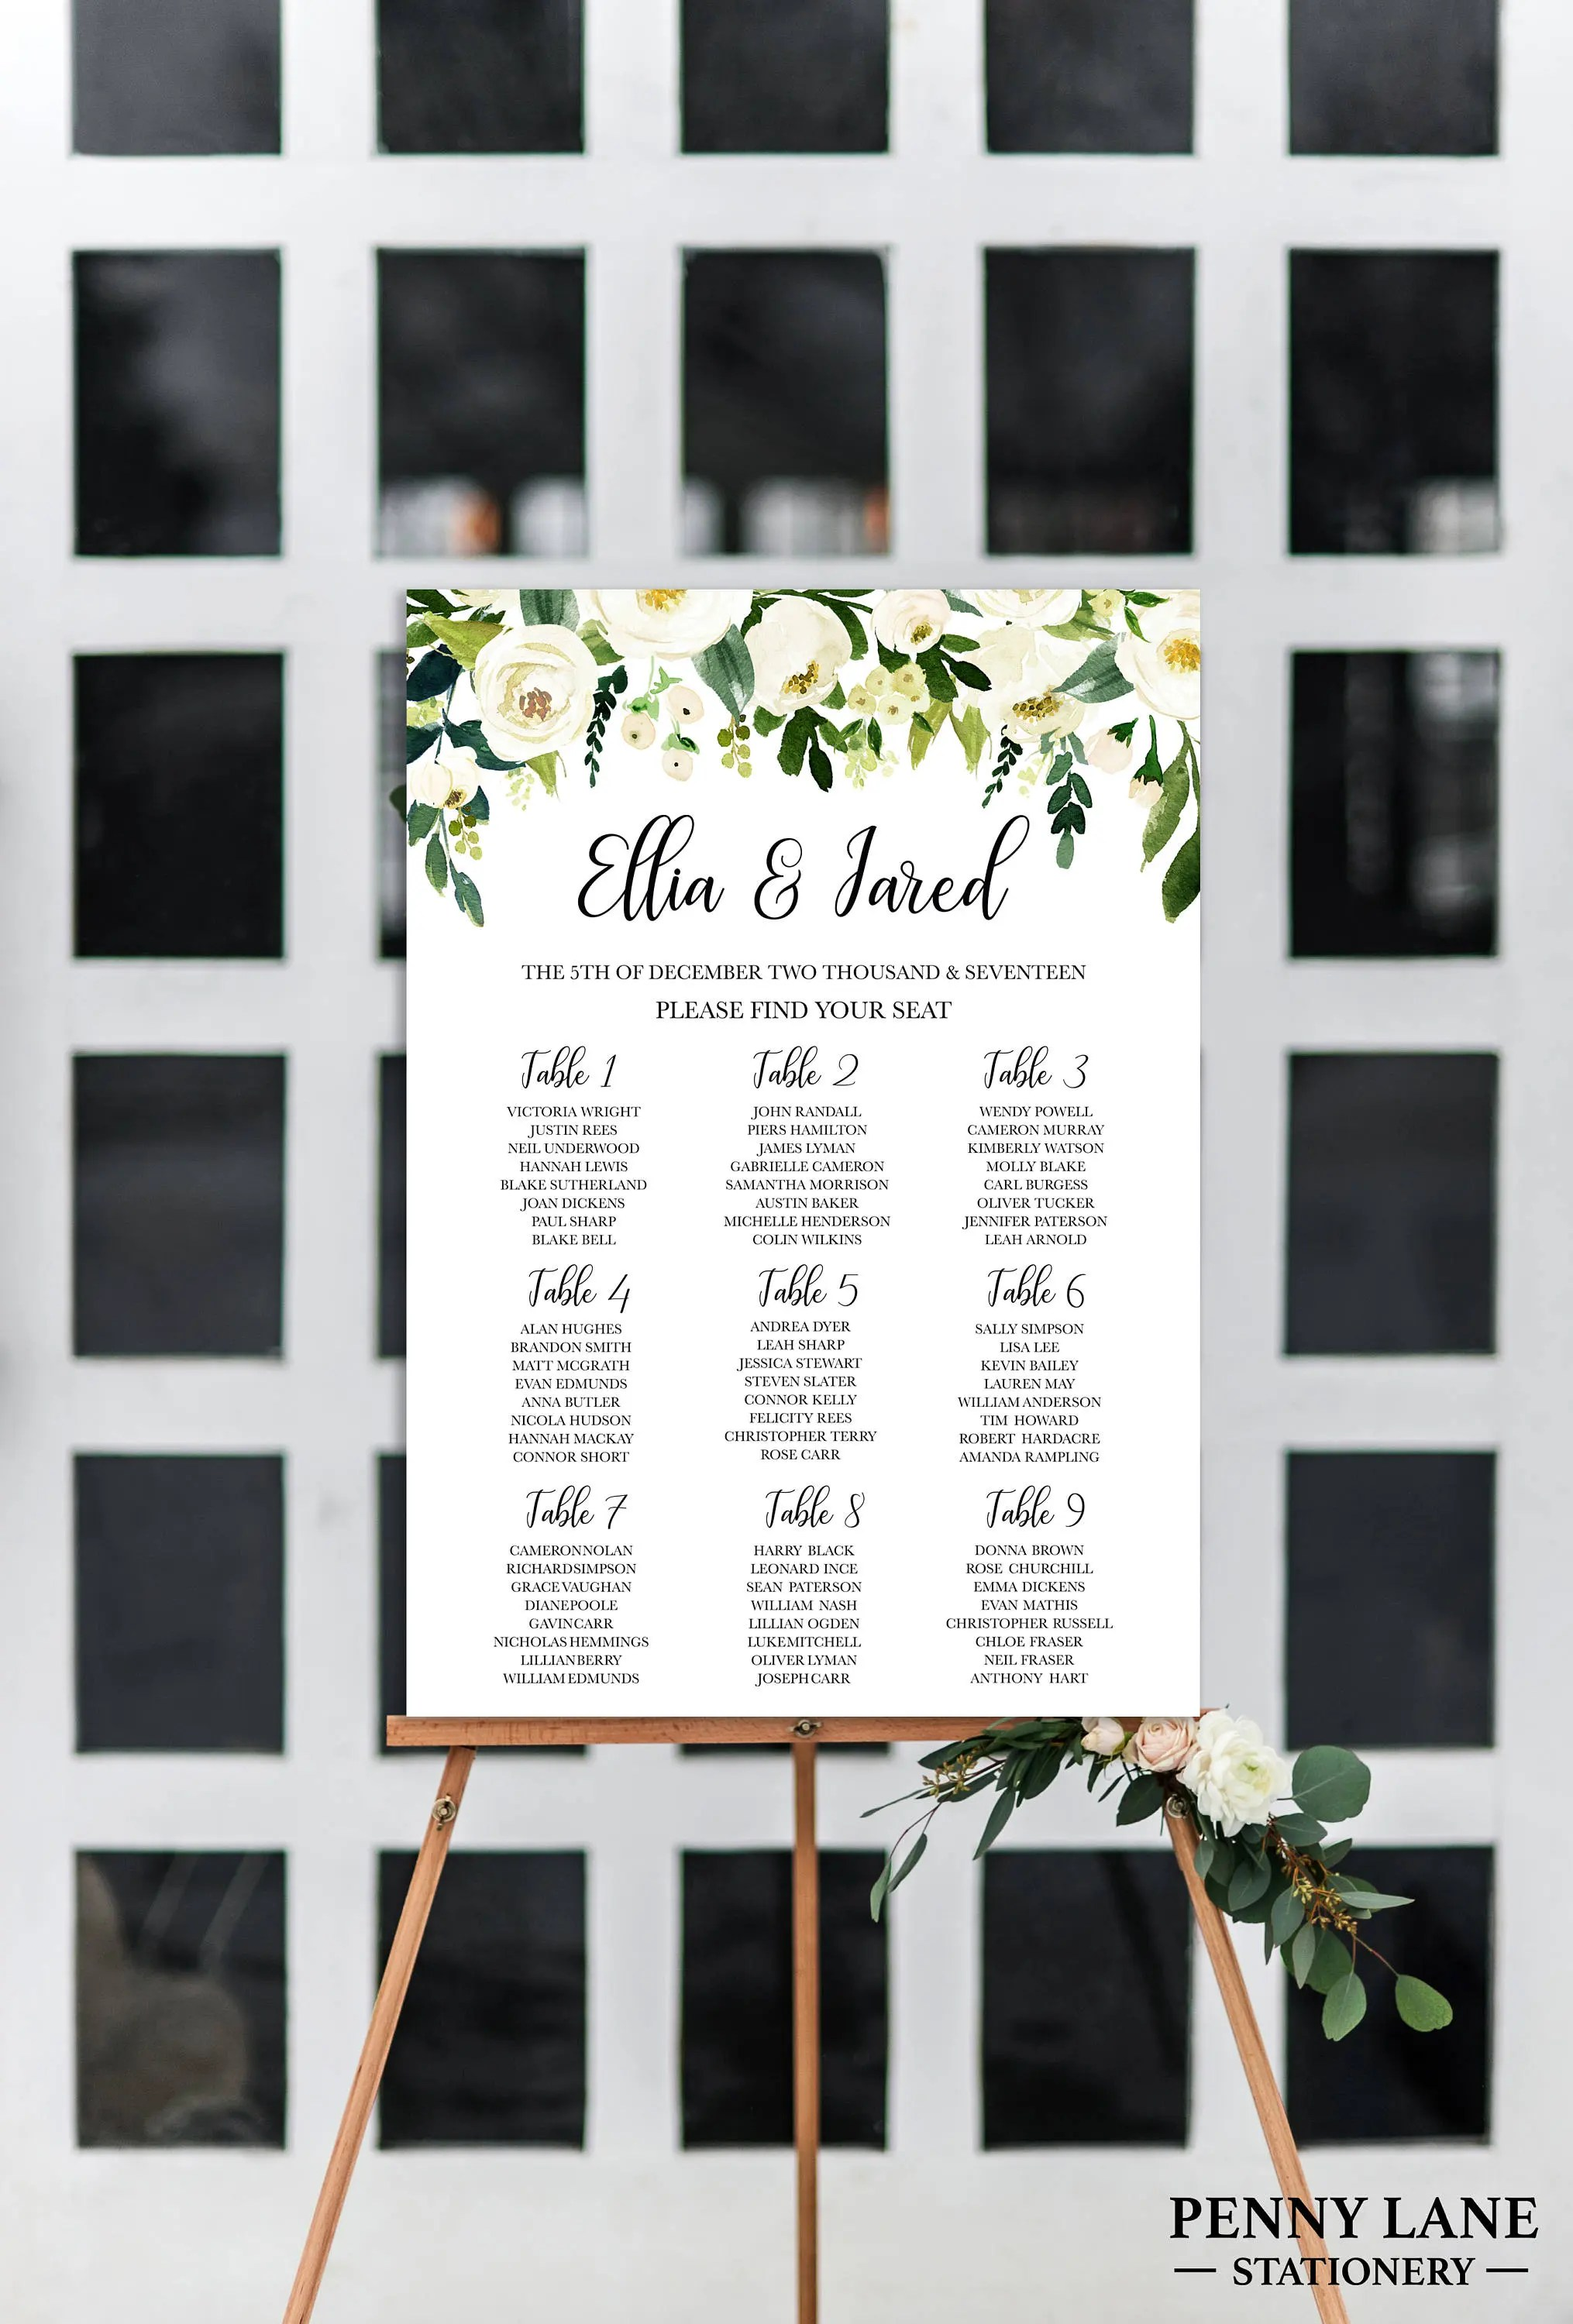 Wedding seating charts plans chart template signs white floral chartwf also etsy rh